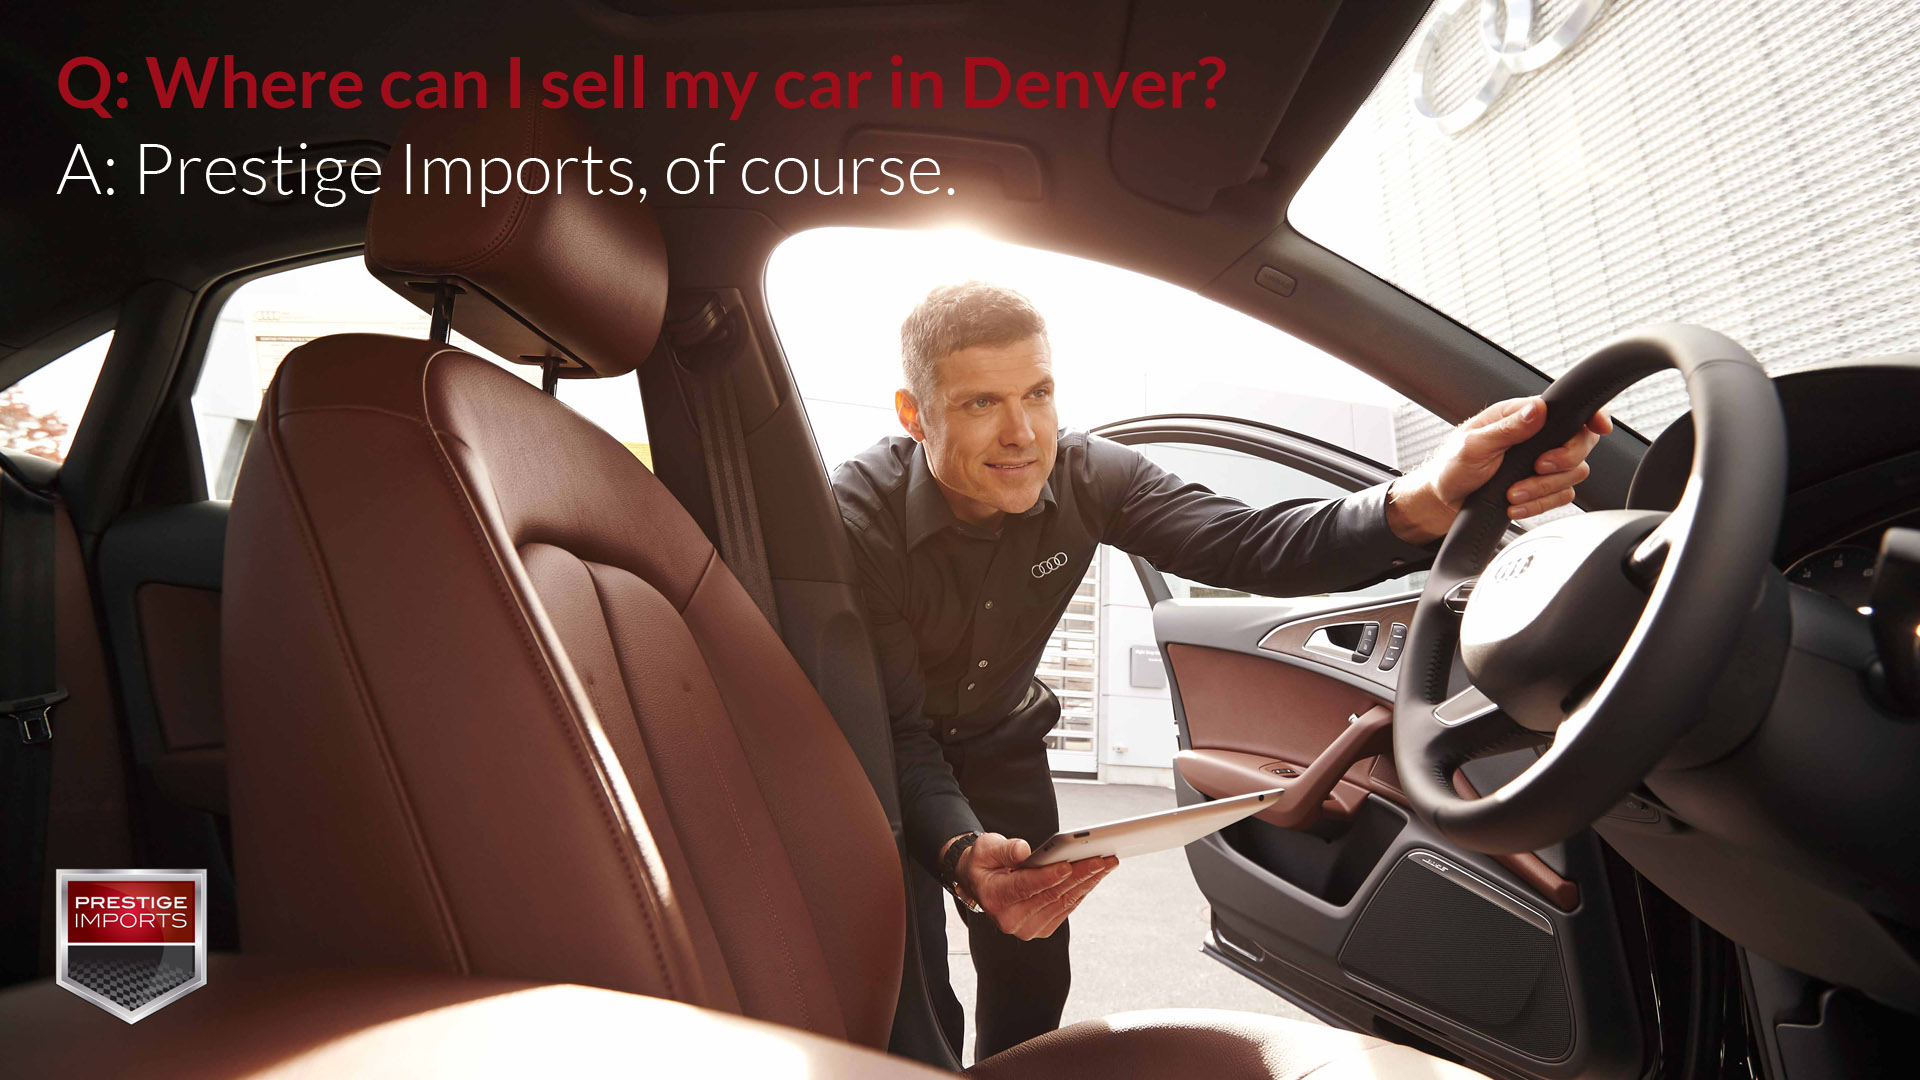 Q: Where can I sell my car in Denver? A: Prestige Imports, of course.